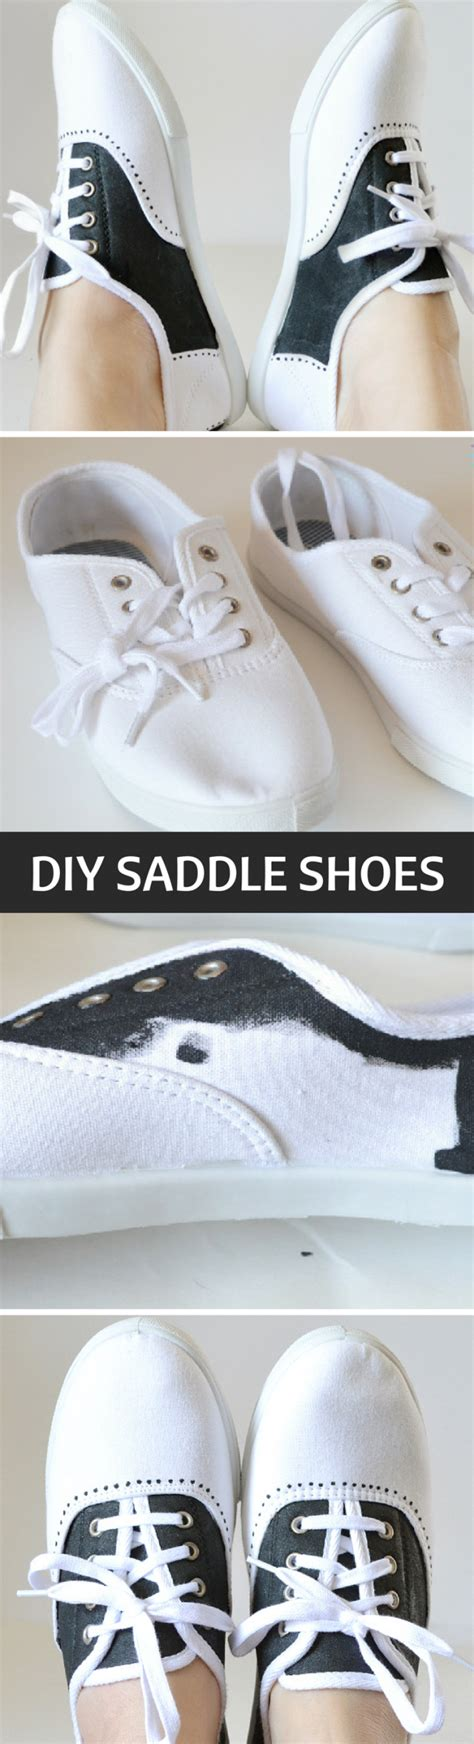 saddle shoes diy painted faux saddleshoes tutorial at spark